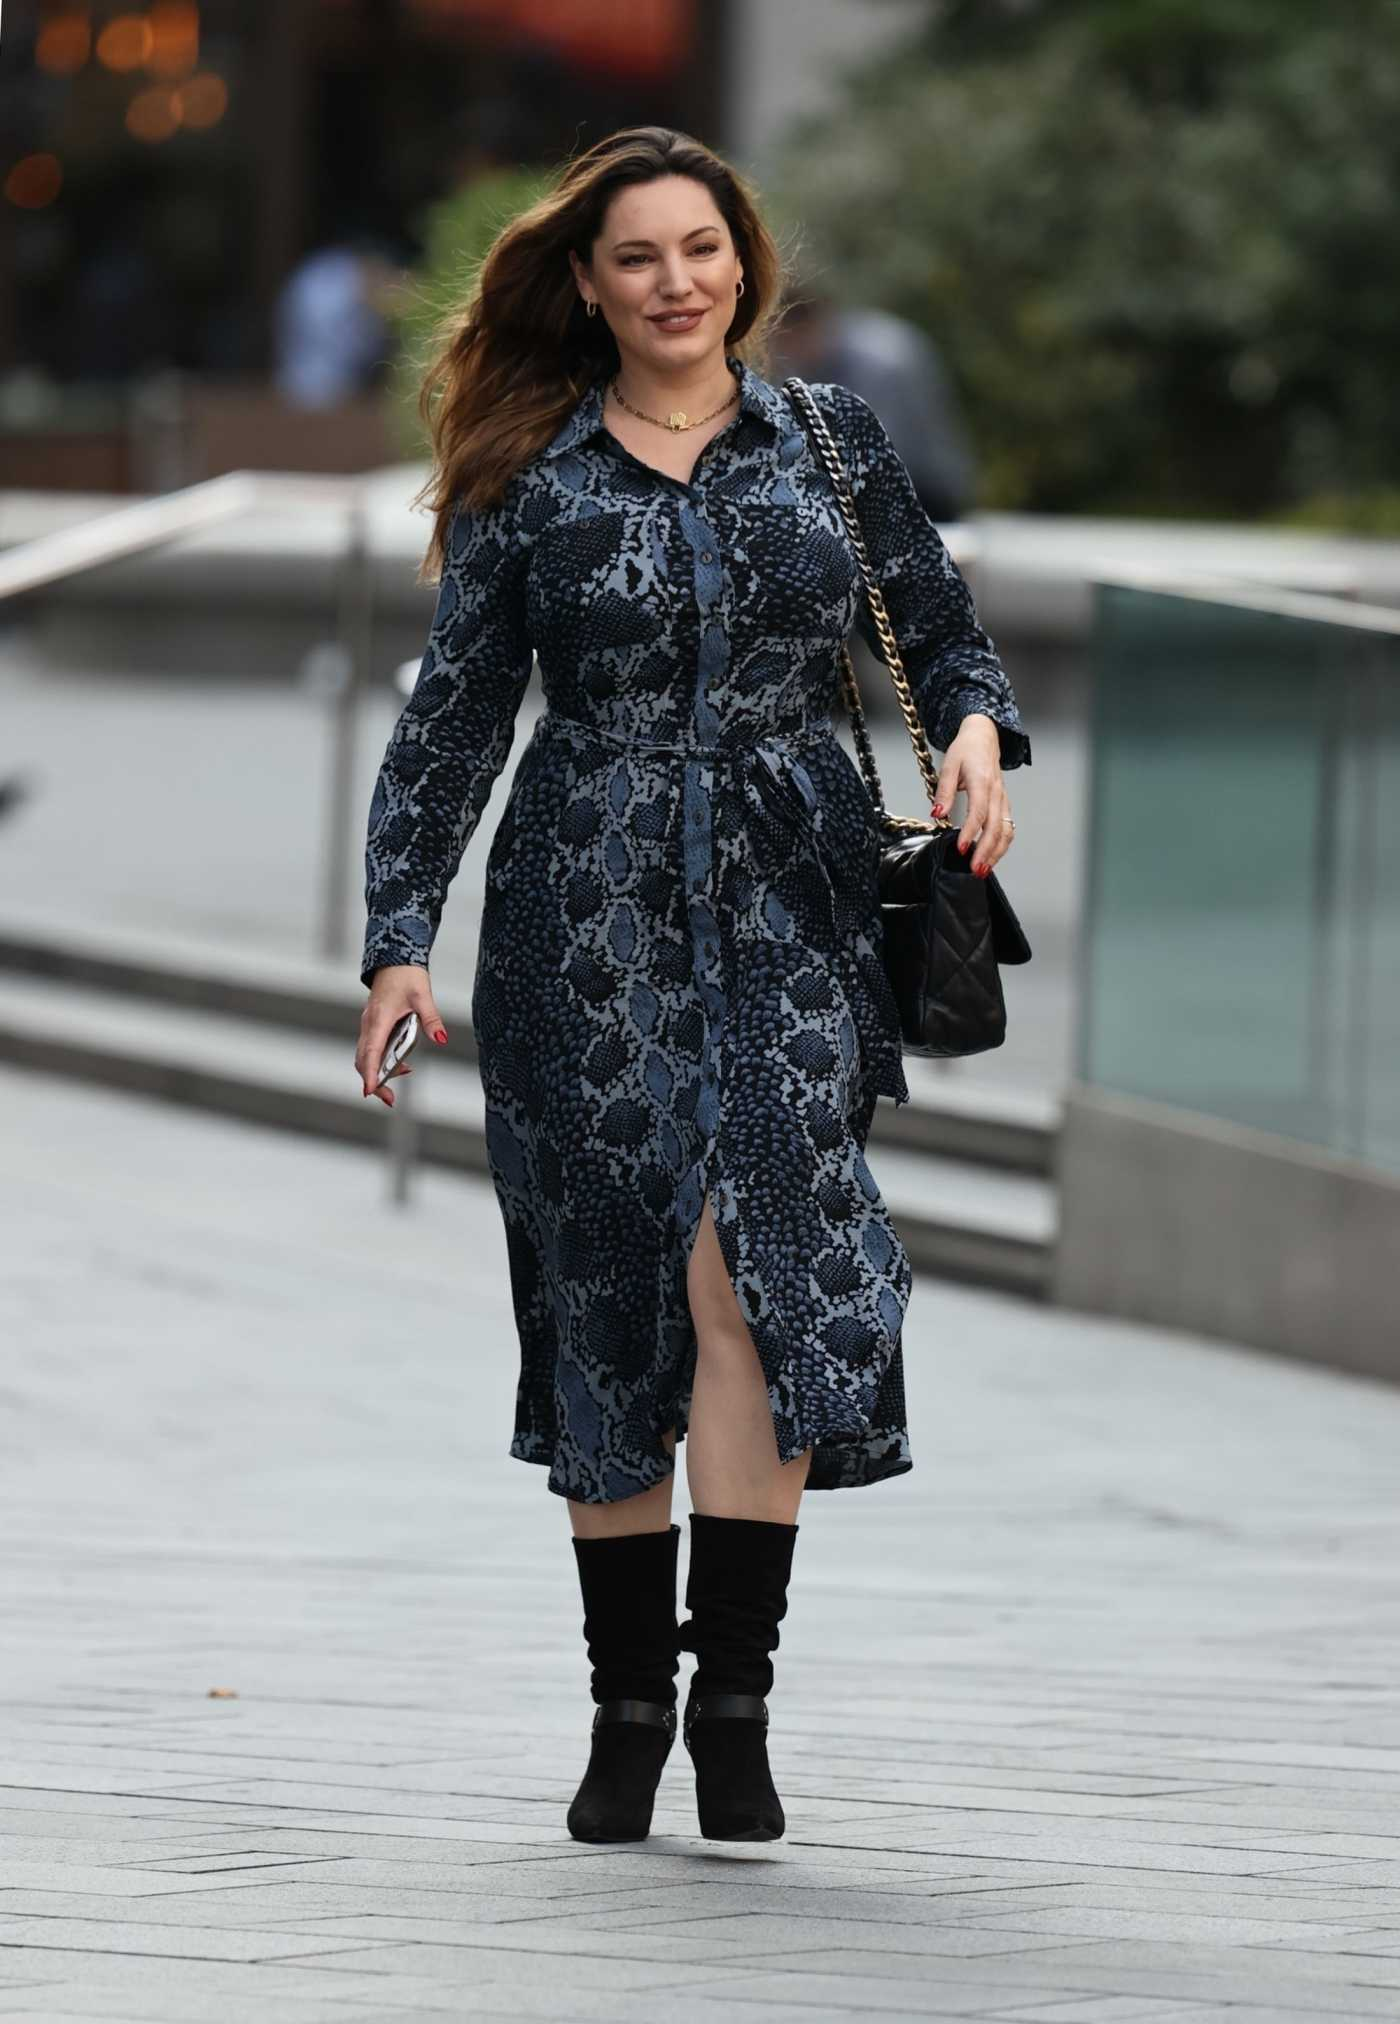 Kelly Brook in a Snakeskin Patterned Dress Arrives at the Heart Radio Studios in London 09/11/2020